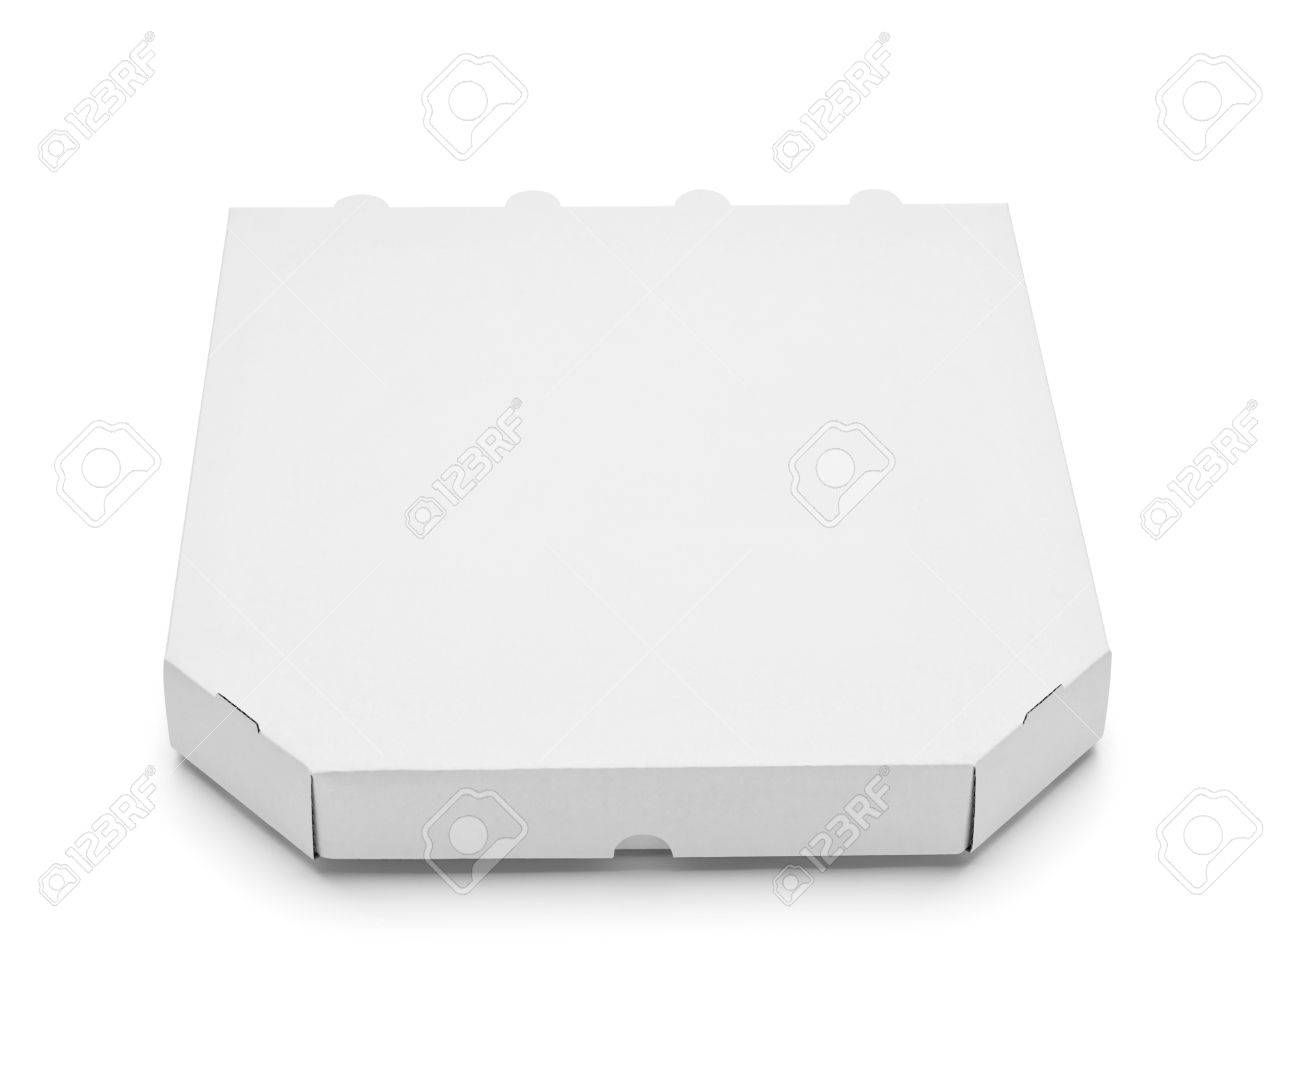 close up of a white pizza box template on white background stock